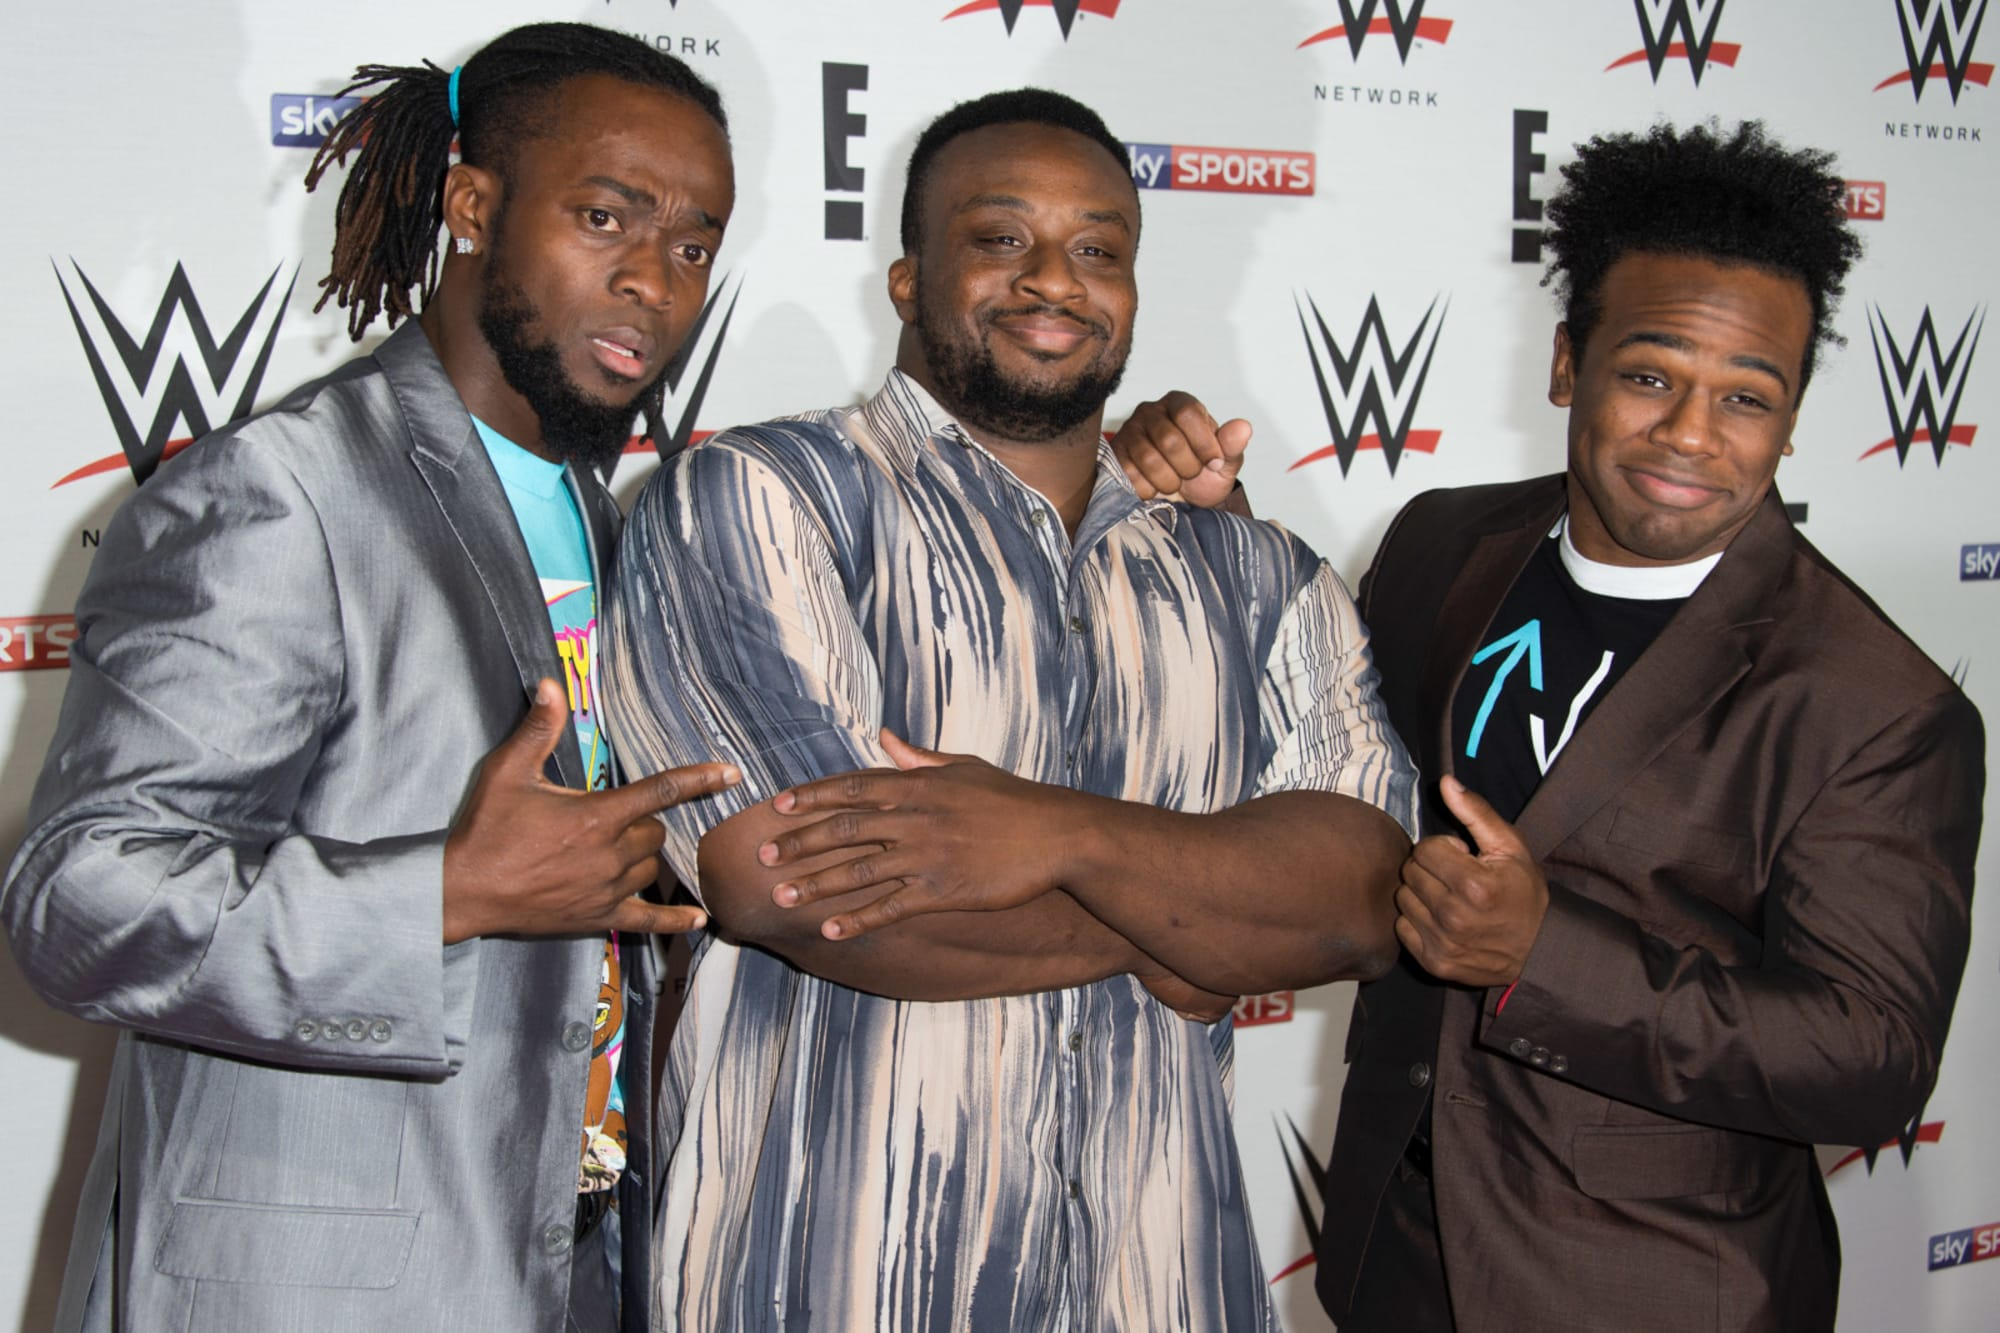 WWE: Wrestlers showing public support on current social issues matters